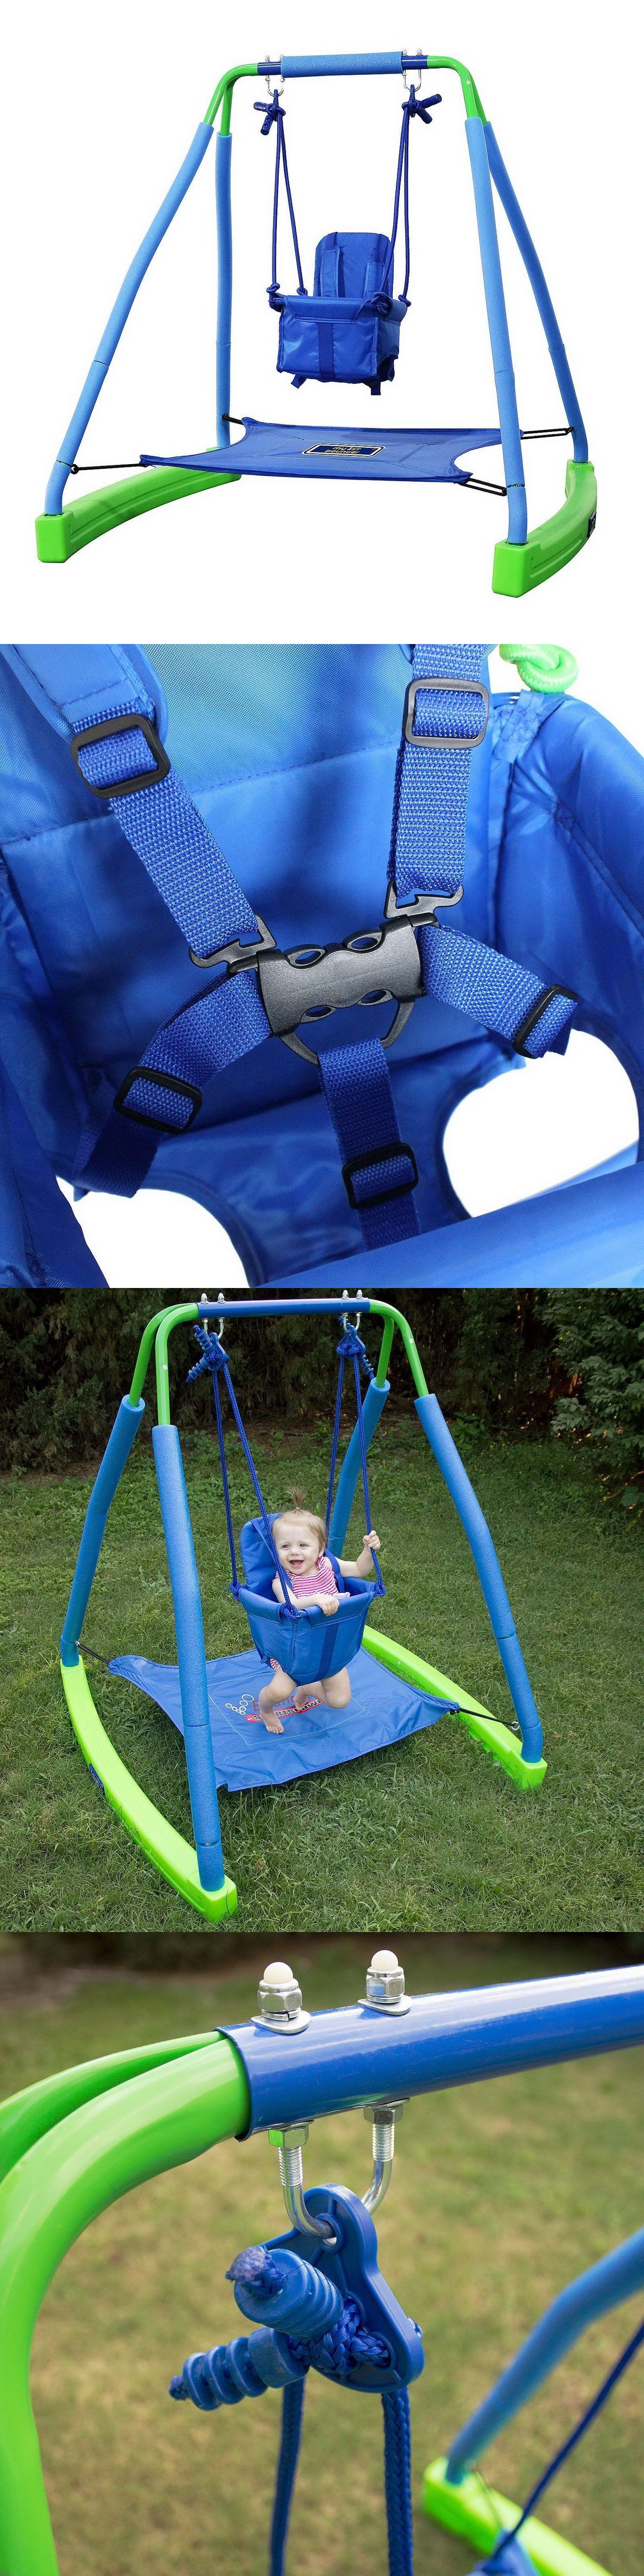 medium resolution of baby swings 2990 my first toddler baby bucket swing with bouncer safety harness age 9 36 months buy it now only 112 95 on ebay